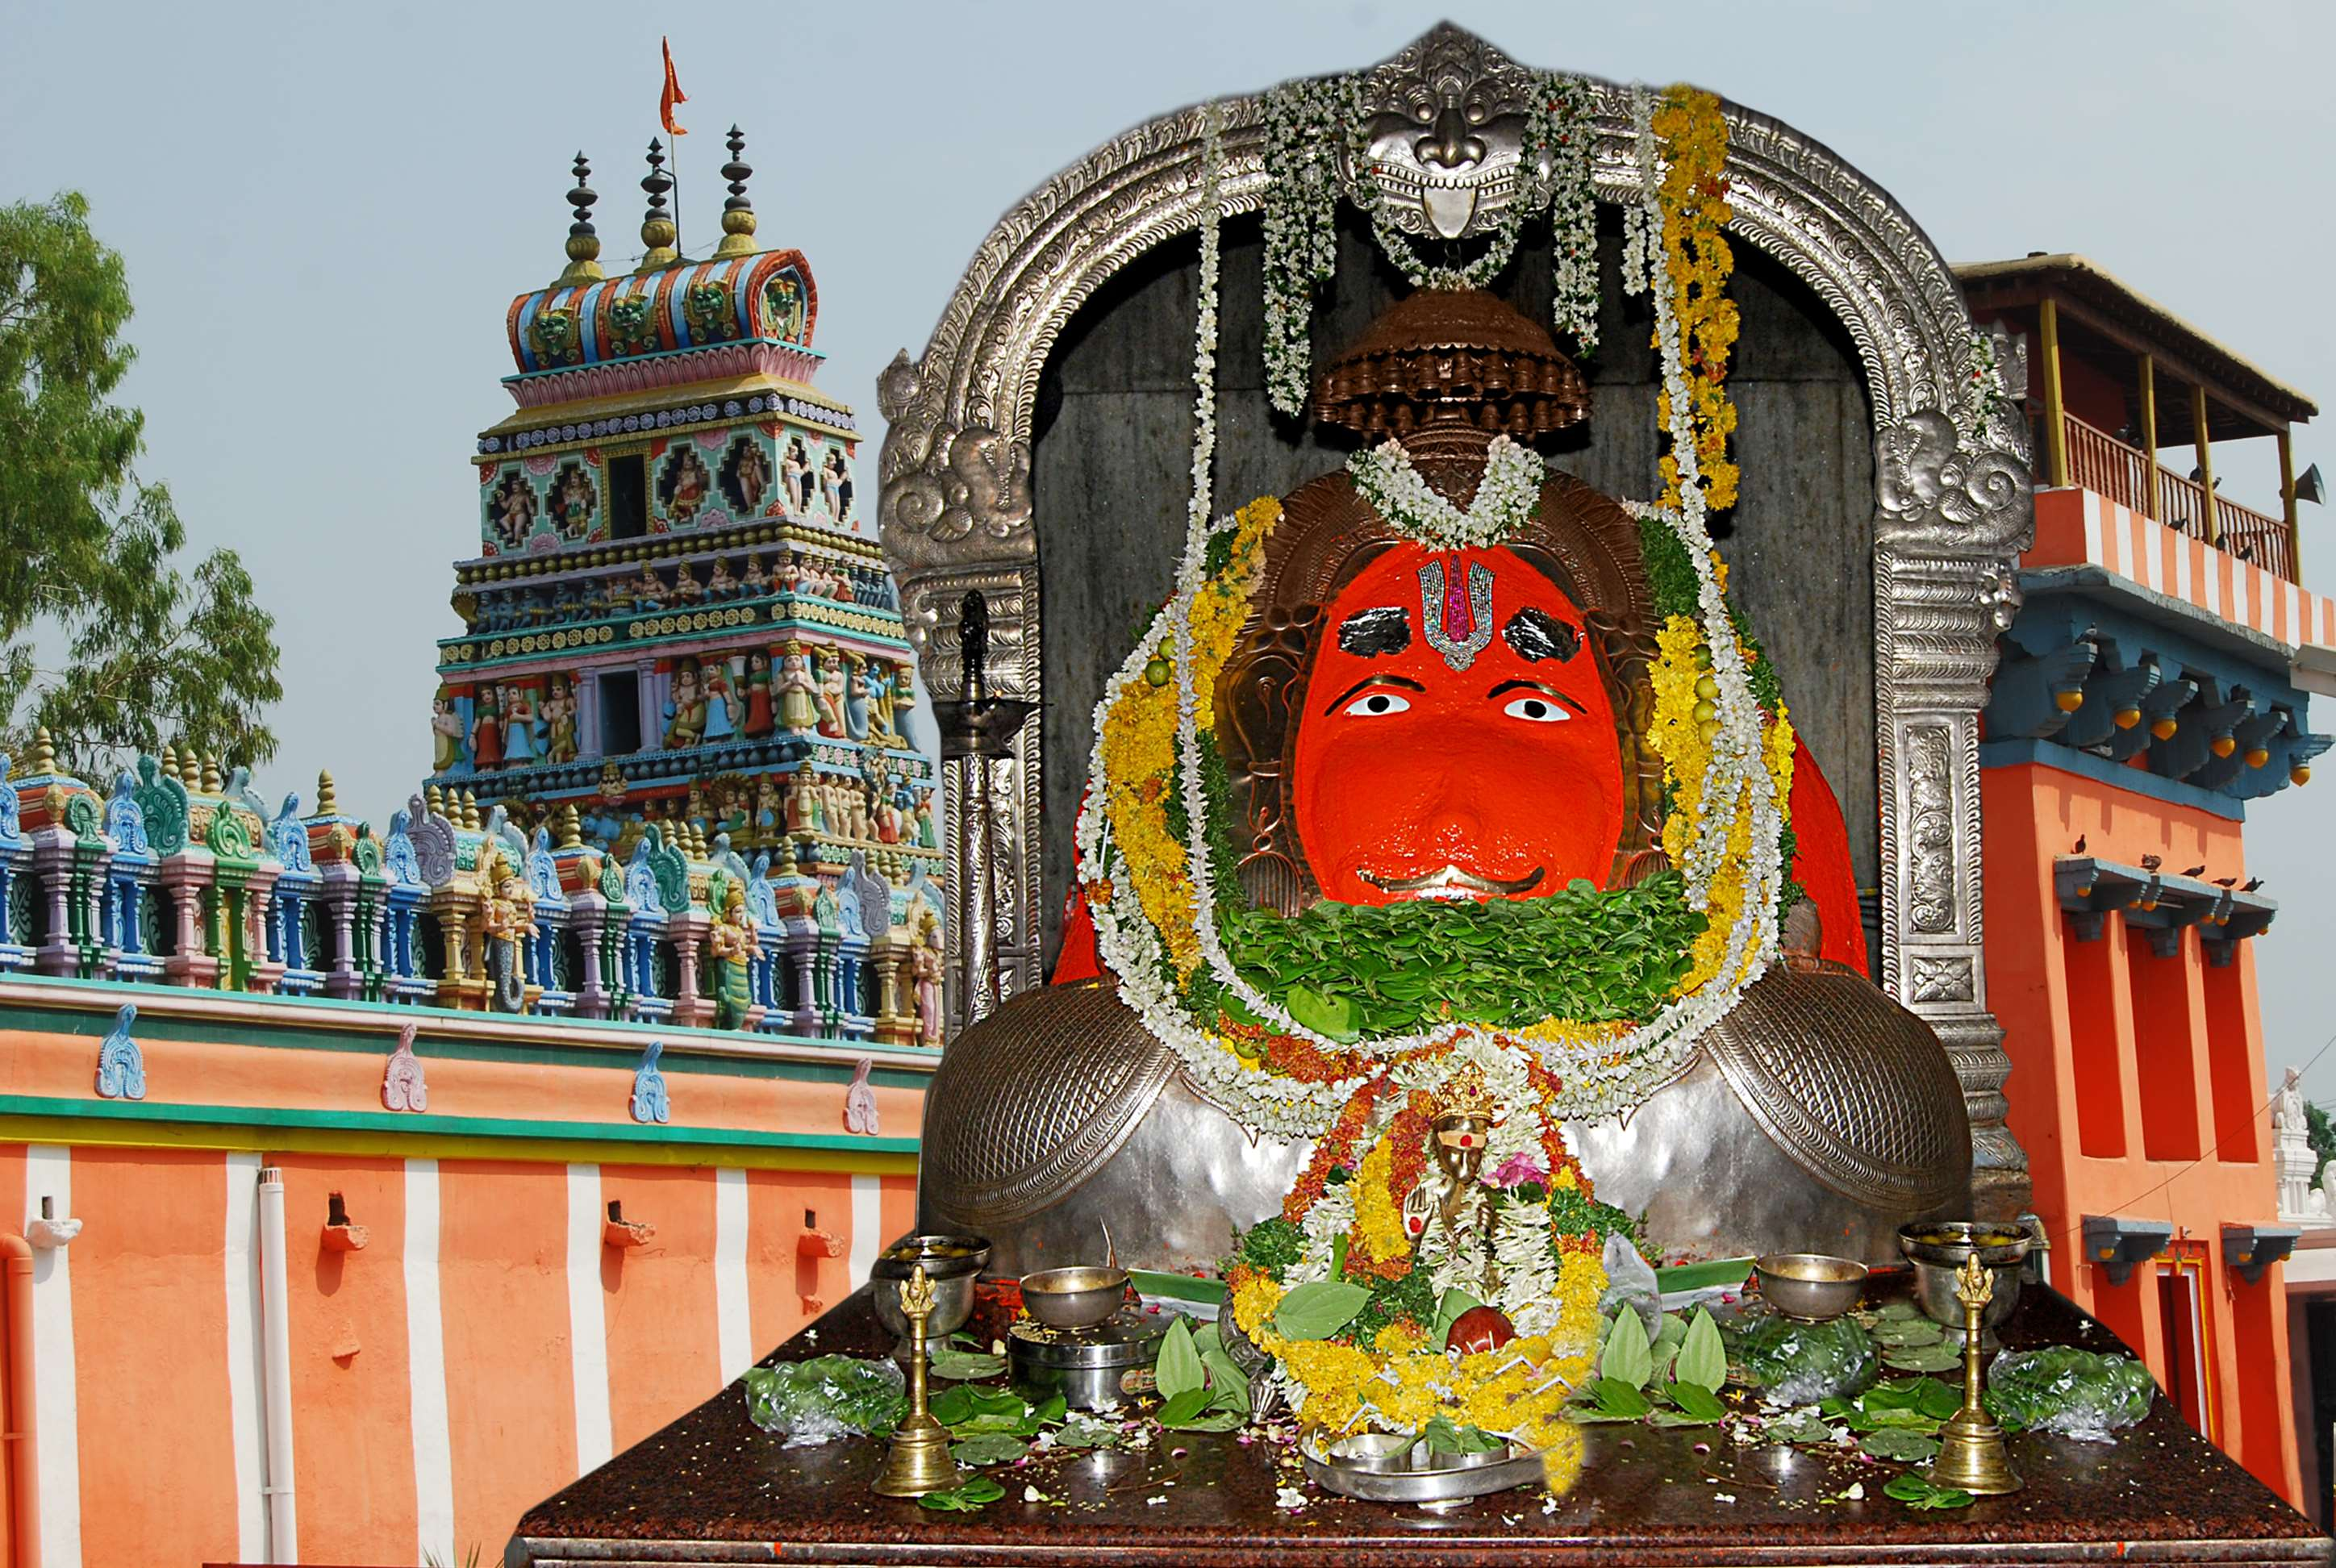 History of the Karmanghat Hanuman Temple